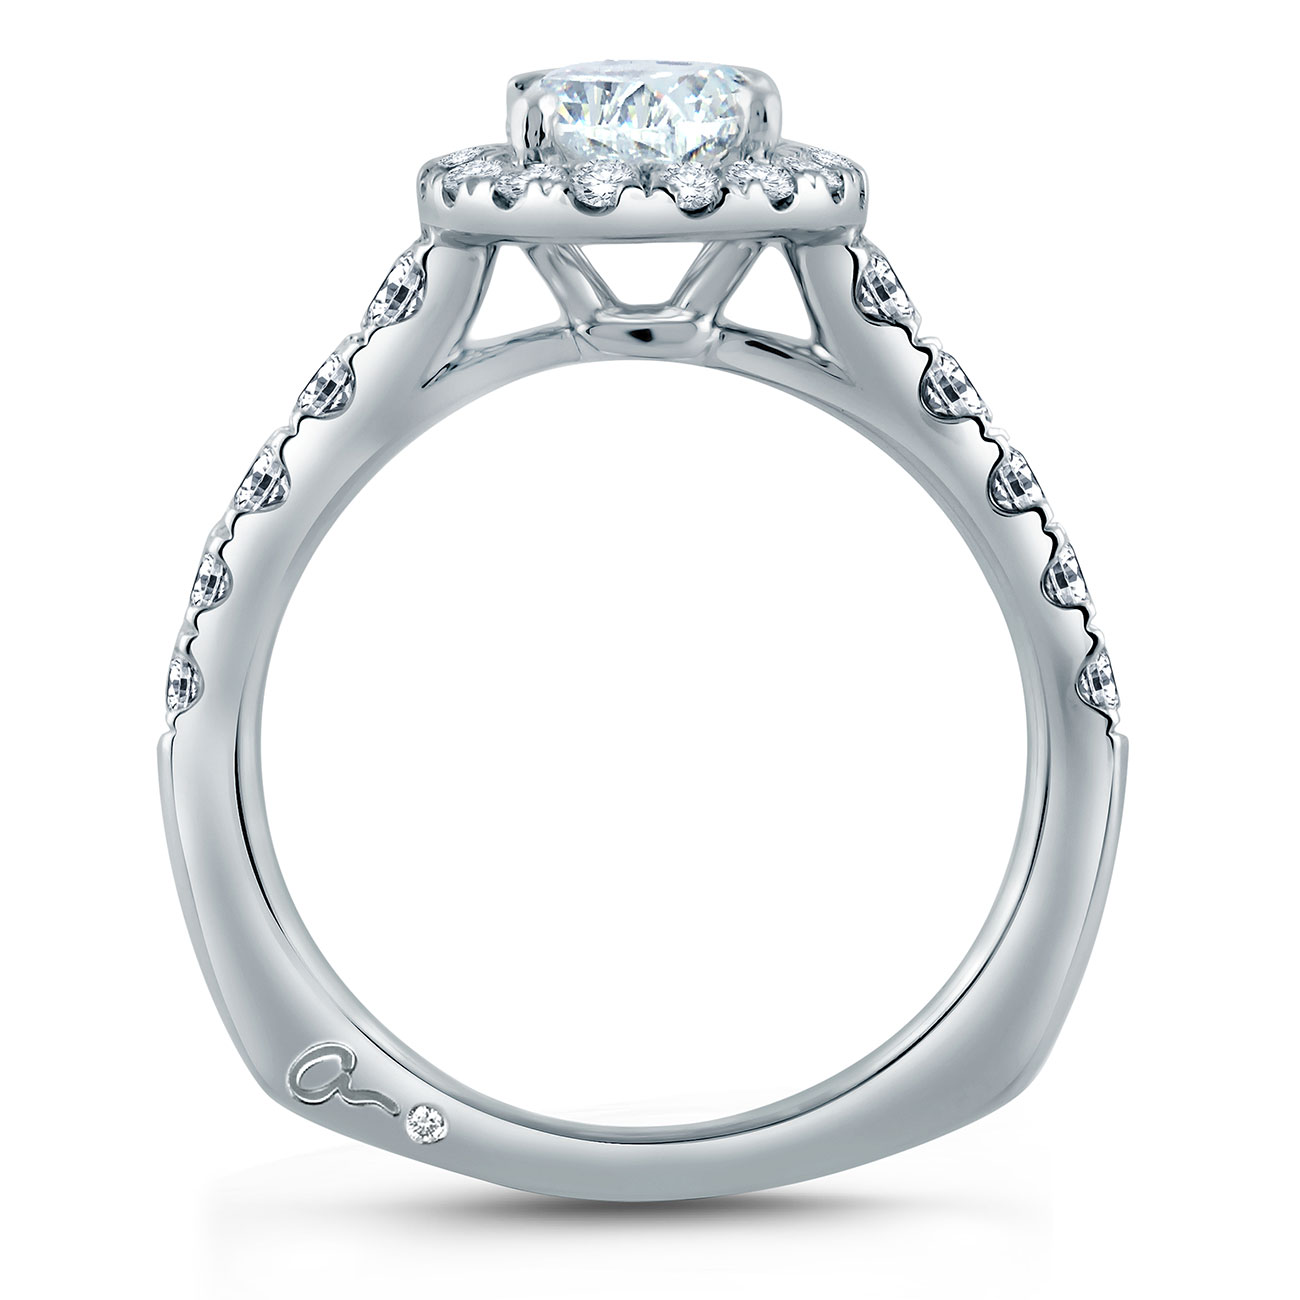 A.JAFFE Platinum Signature Engagement Ring MES868 Alternative View 1